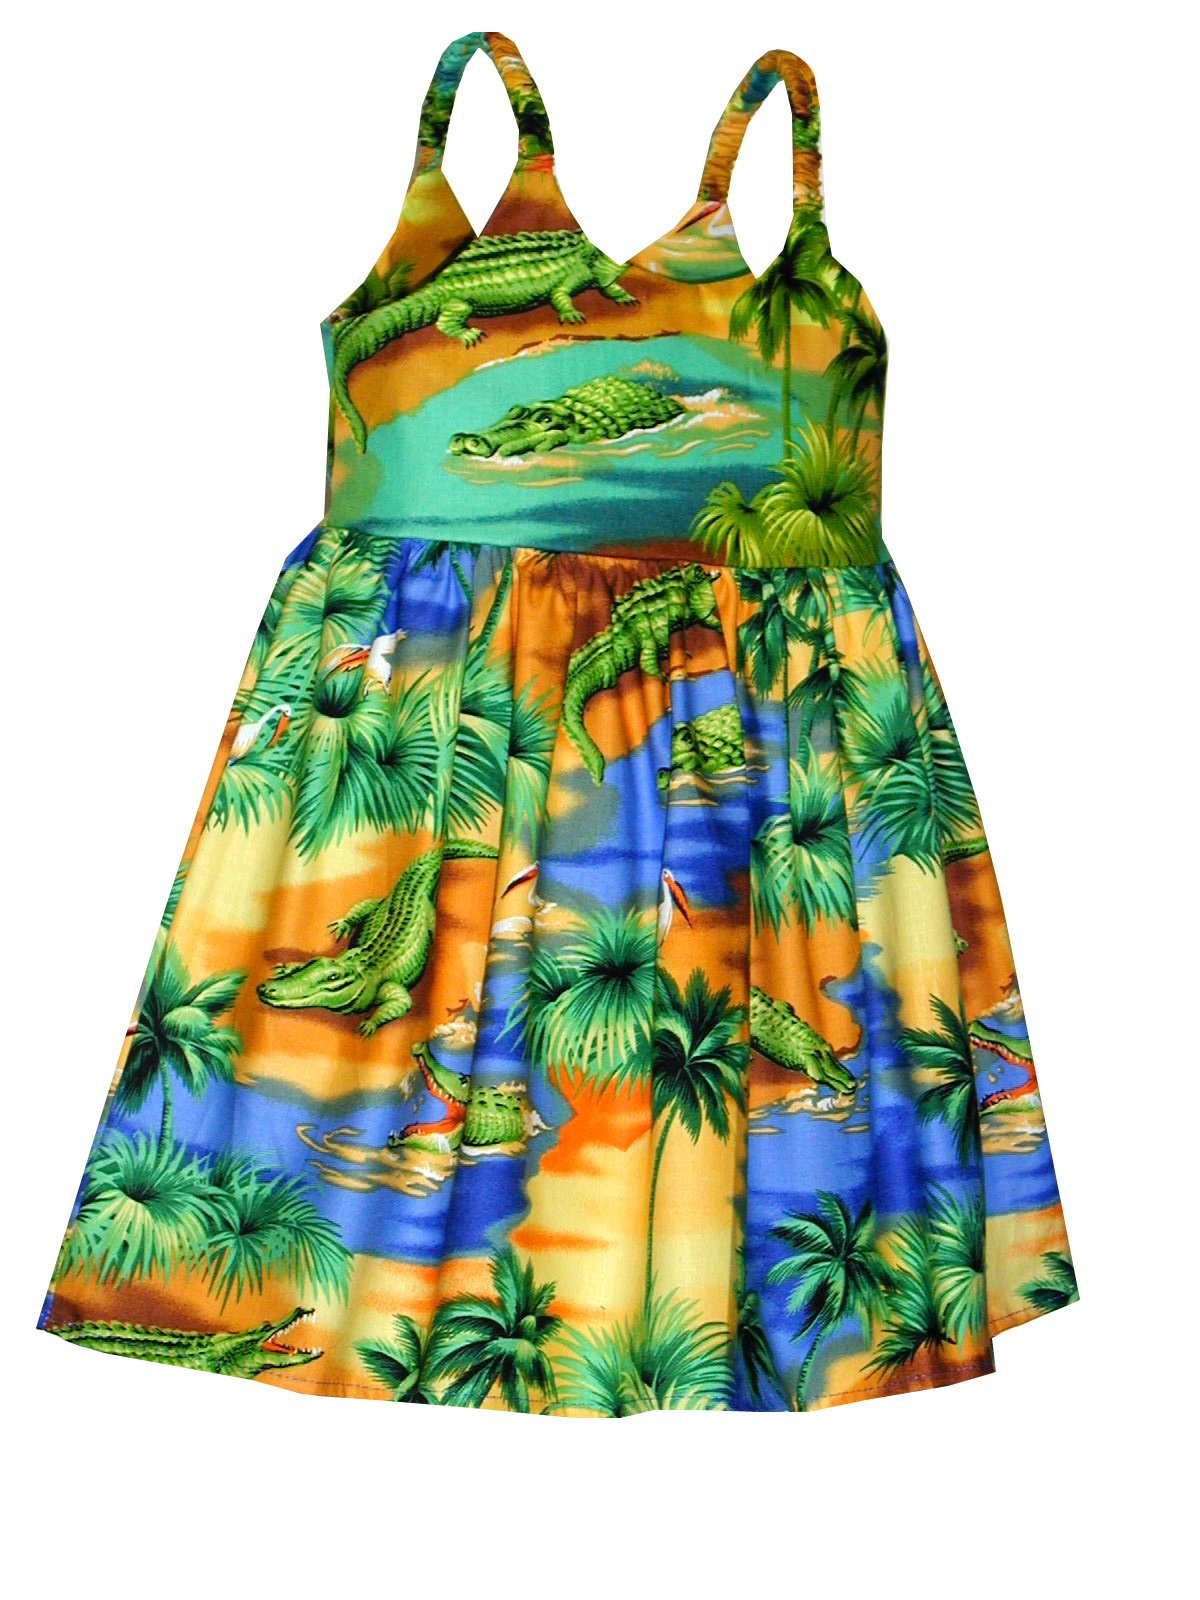 Pacific Legend Girls Florida Alligator Lagoon Toddler Bungee Dress Blue 5-6 for 3yrs old